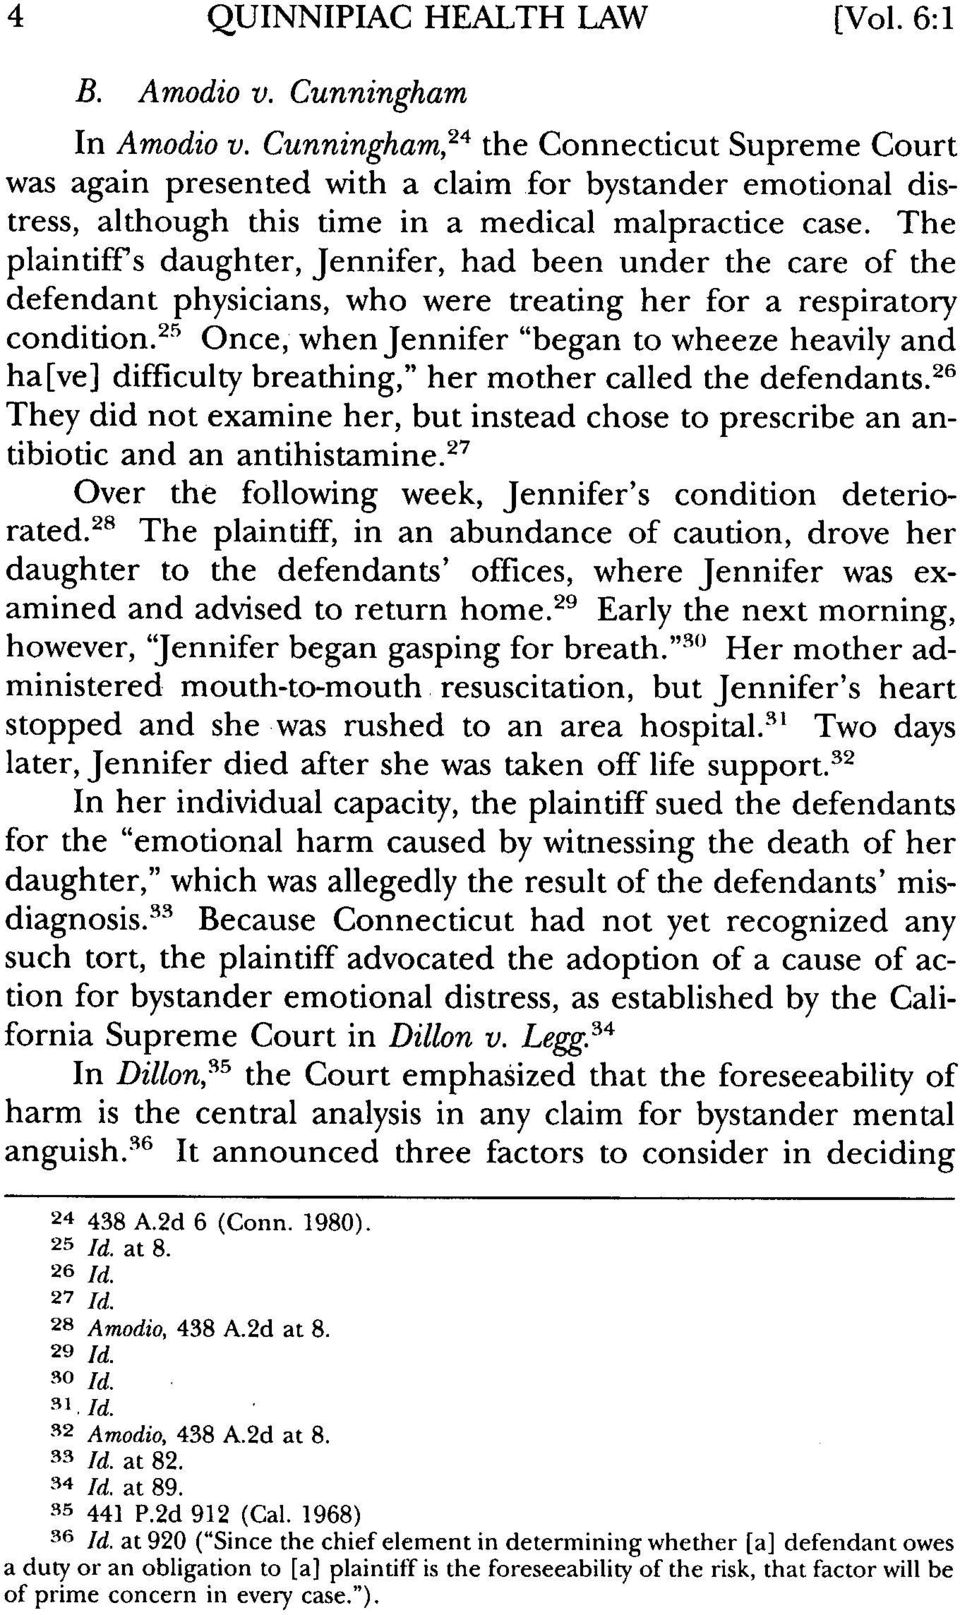 The plaintiff's daughter, Jennifer, had been under the care of the defendant physicians, who were treating her for a respiratory condition.